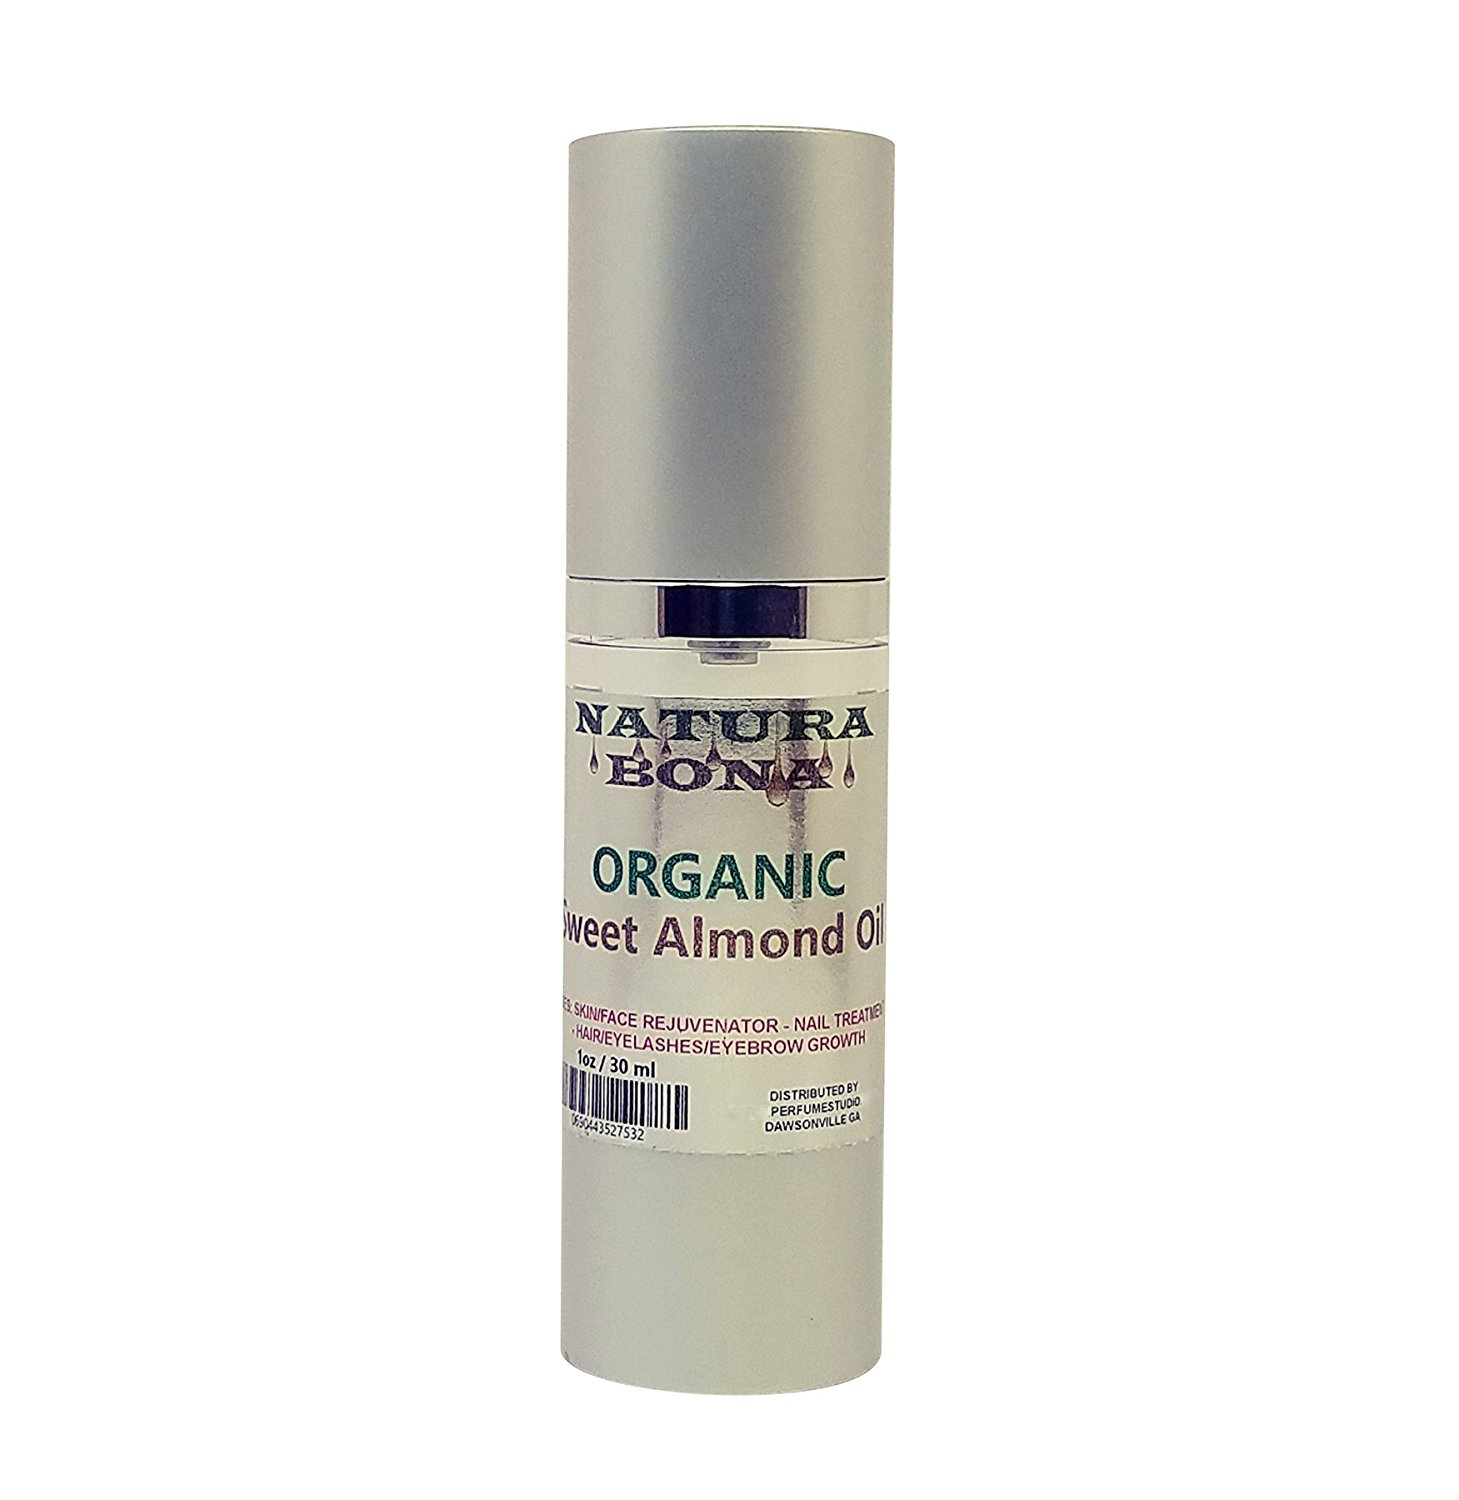 Cheap 1 Almond Calorie Find Deals On Line At Jafra Nourishing Hand Ampamp Nail Lotion Get Quotations Natura Bona Organic Sweet Oil 1oz 100 Pure Cold Pressed Unrefined Hexane